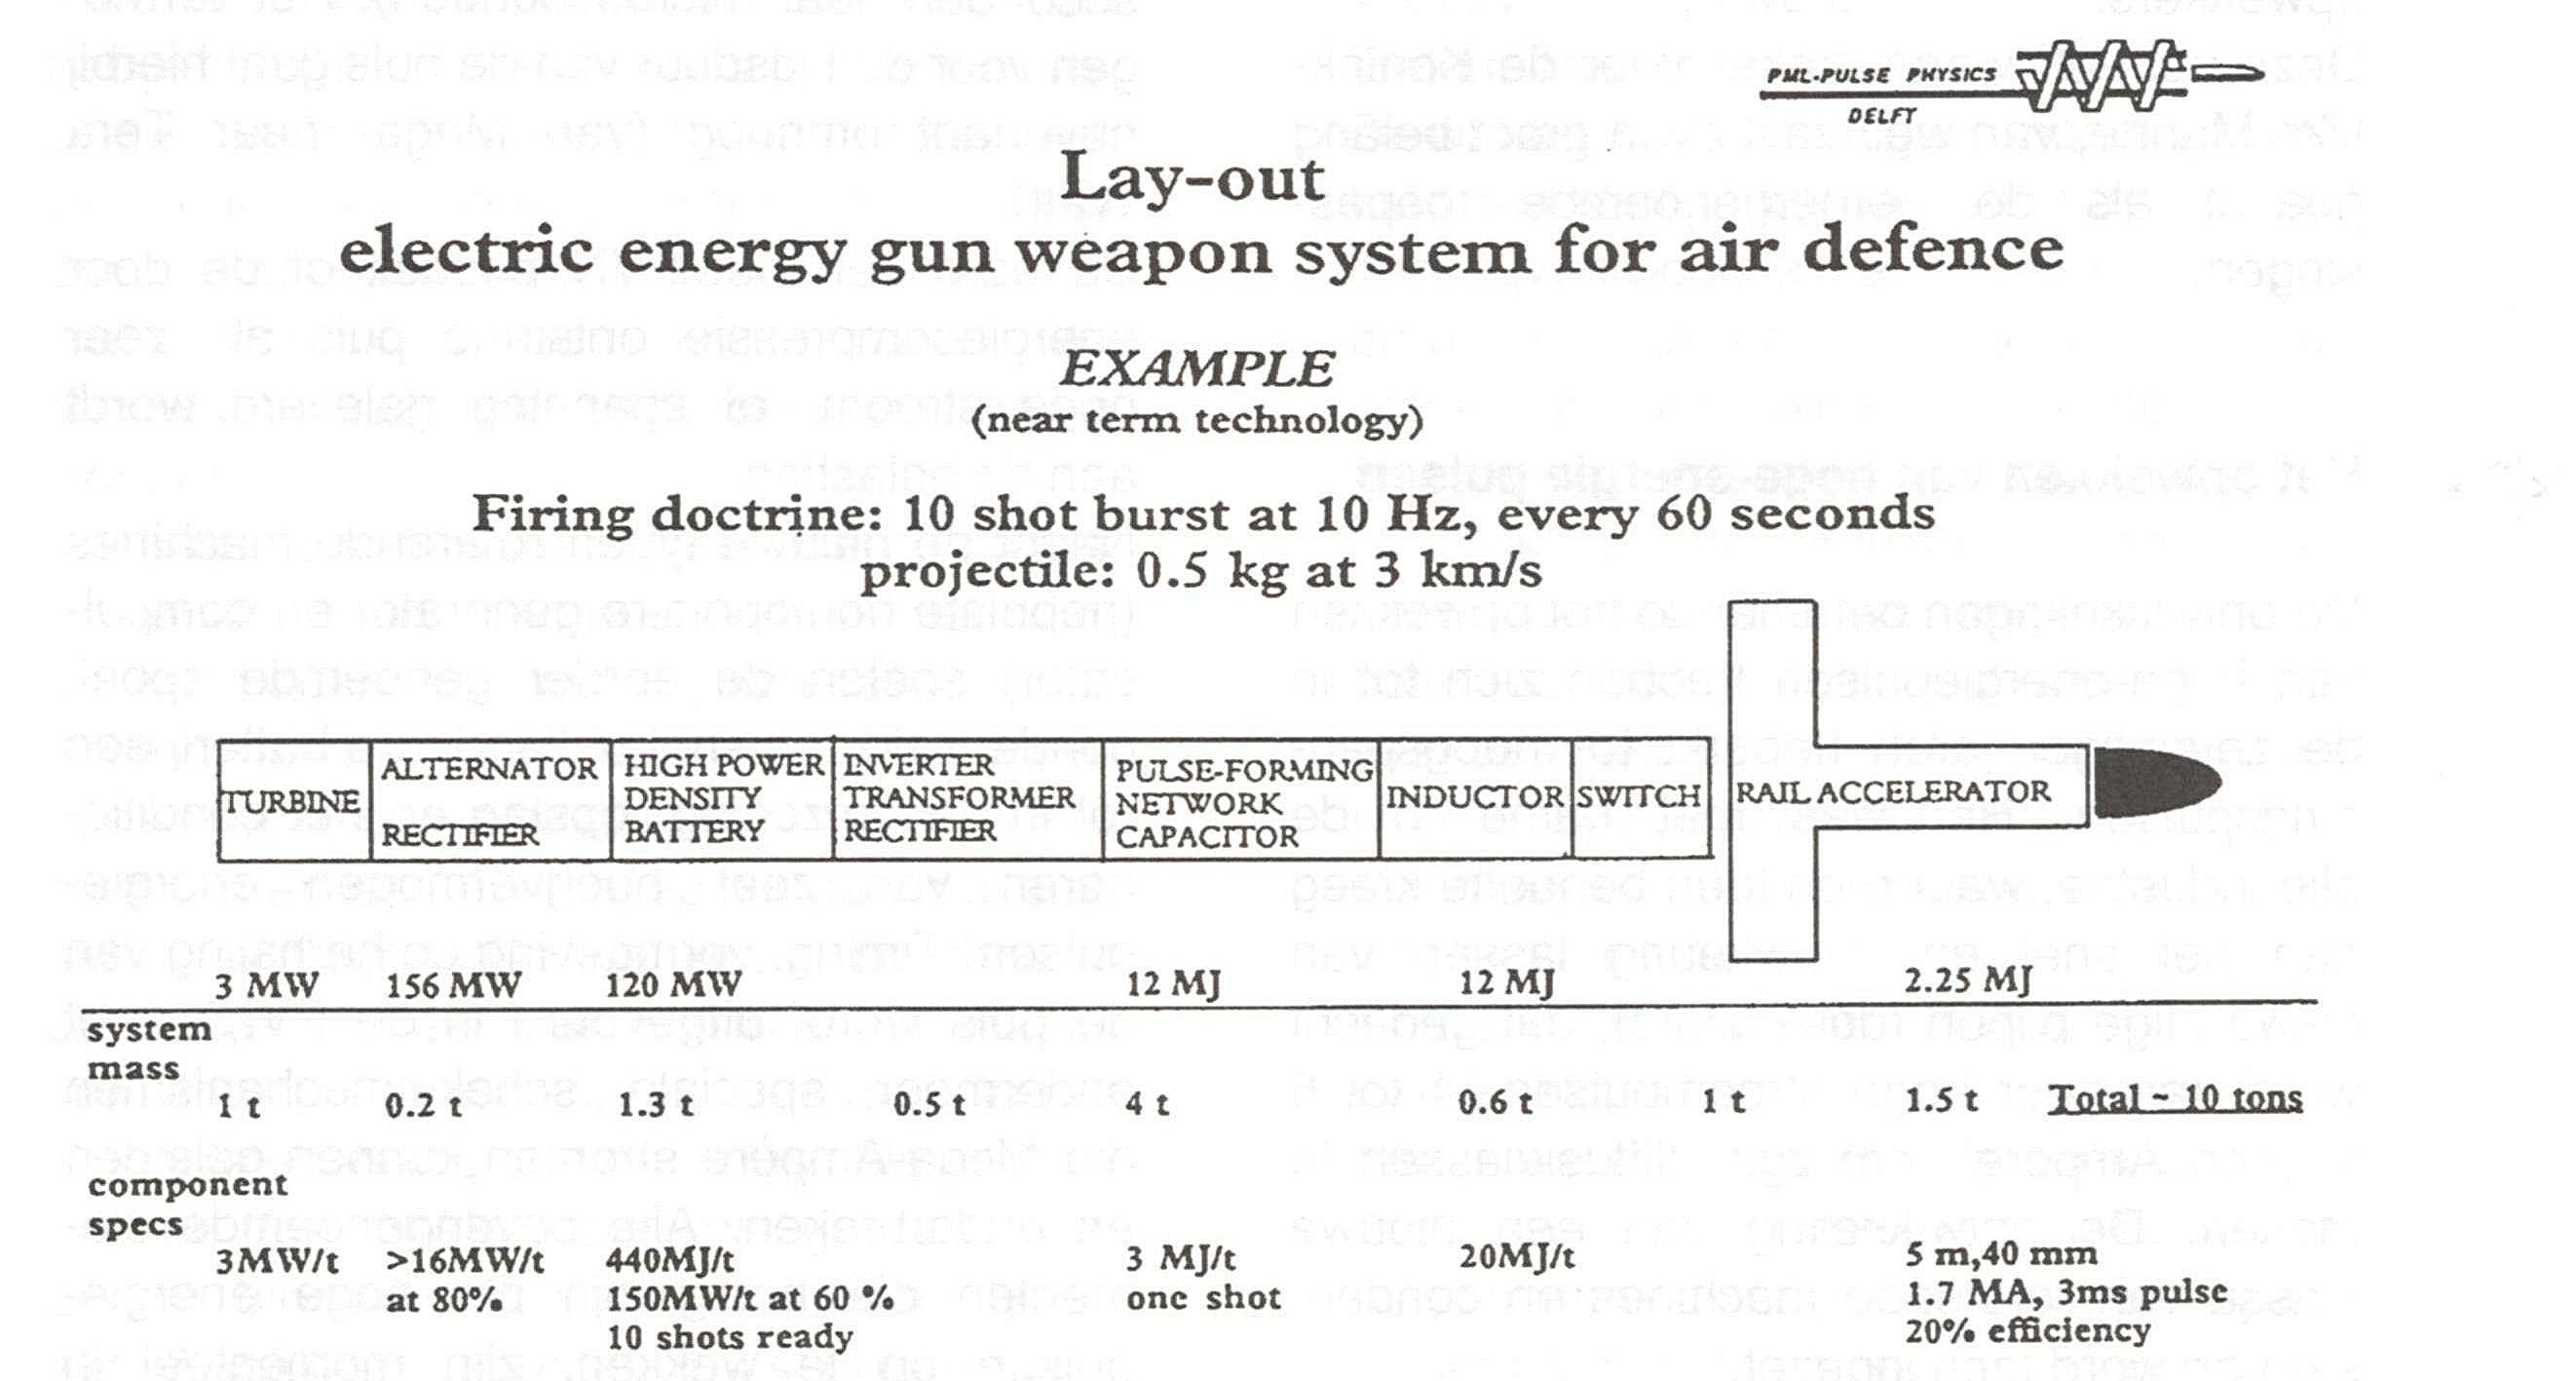 Technology assessment for air defence in 1993